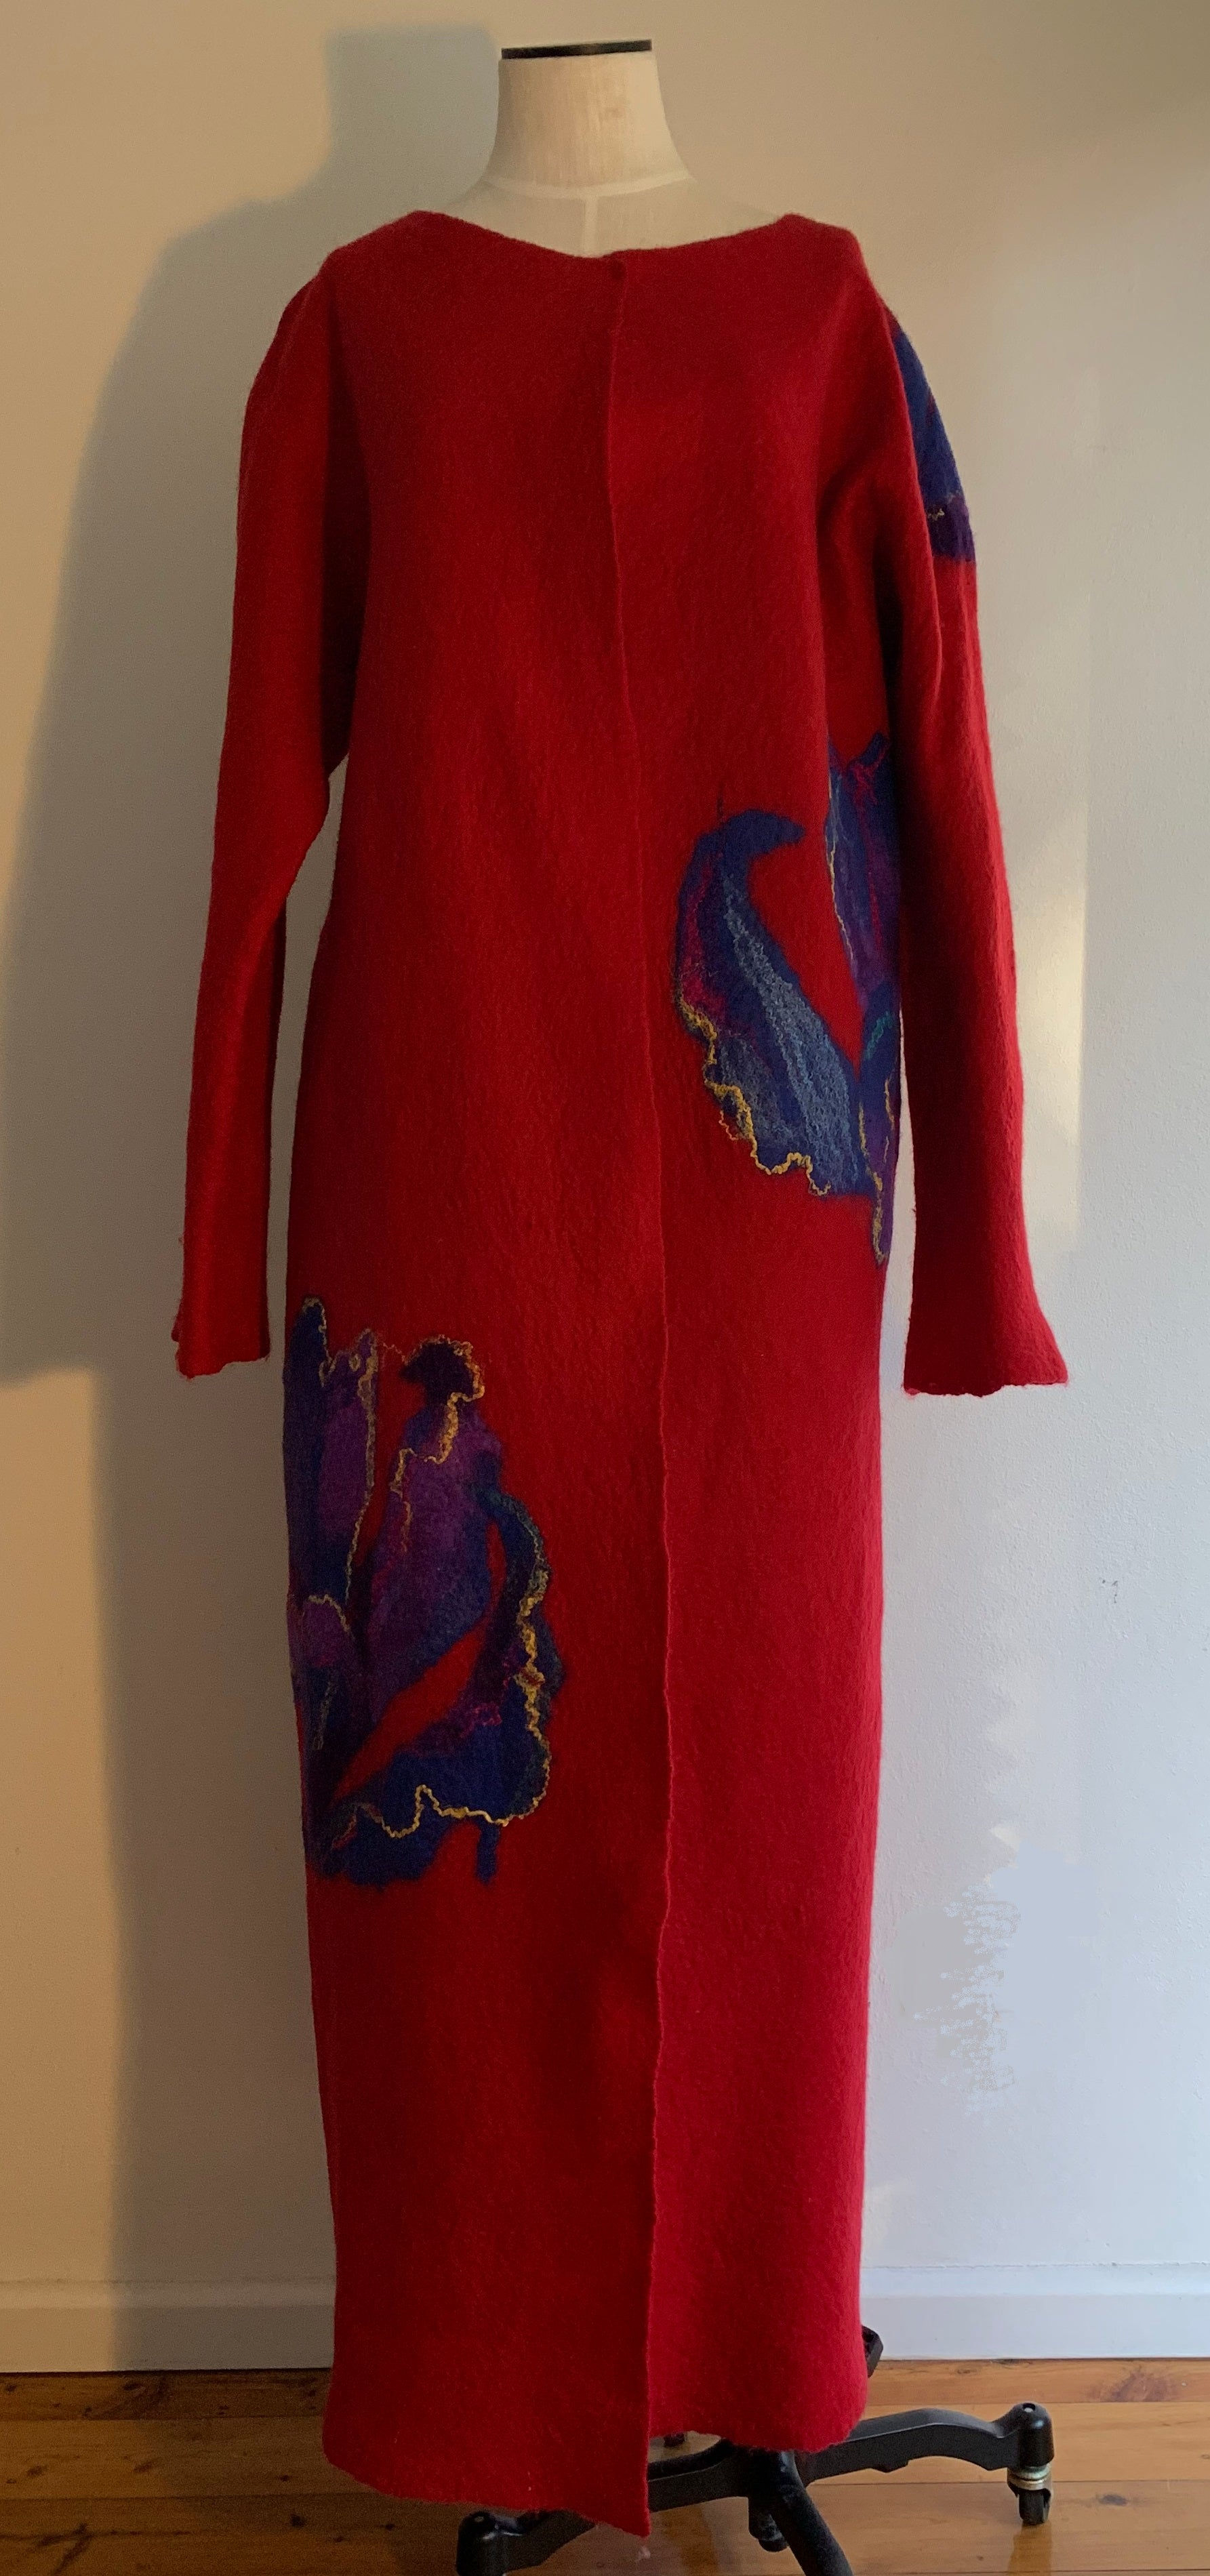 Merino Wool Felted Coat by Vera Alexanderova